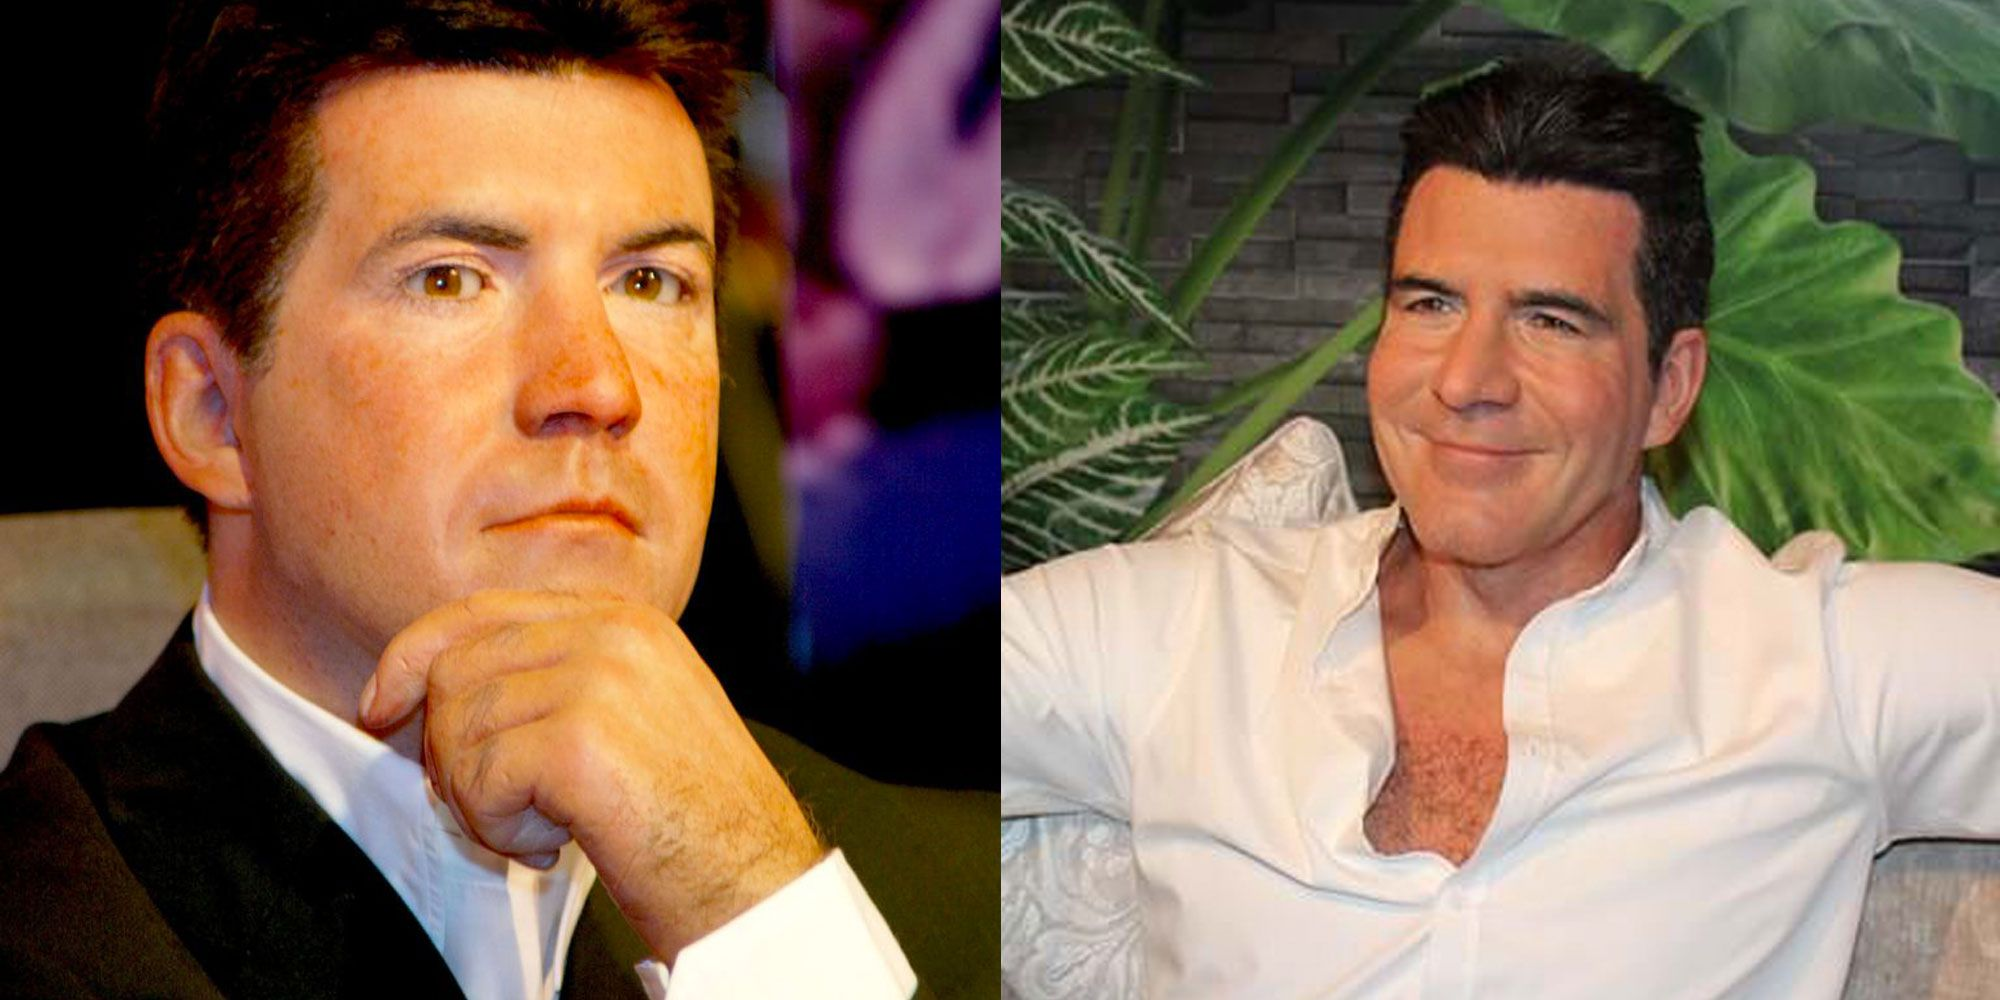 Simon Cowell's Wax Figure Got A Makeover Thanks To Veganism